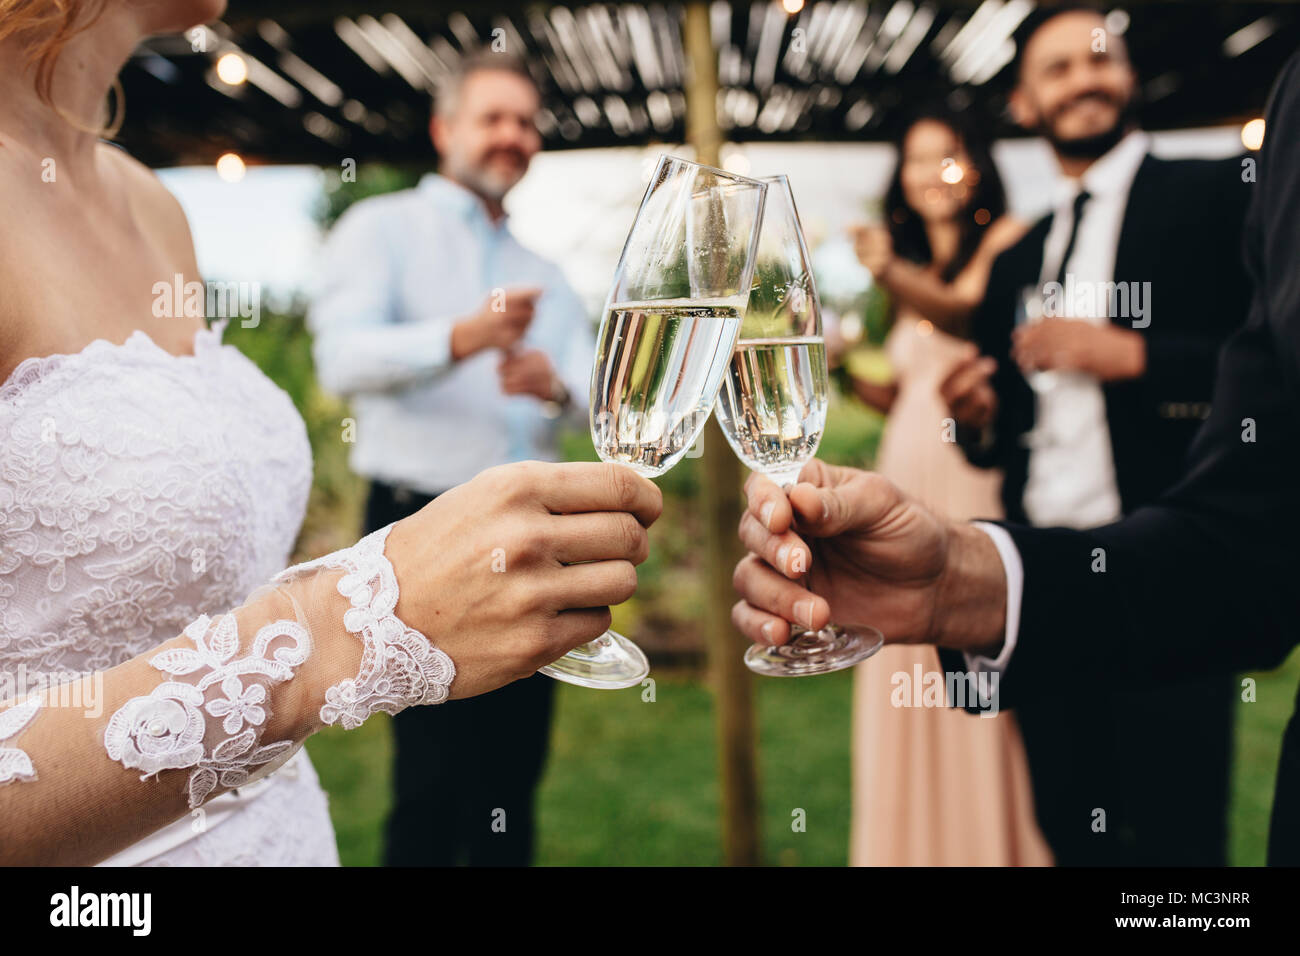 Close up of bride and groom toasting champagne glasses at wedding party. Newlyweds clinking glasses at wedding reception outside. - Stock Image